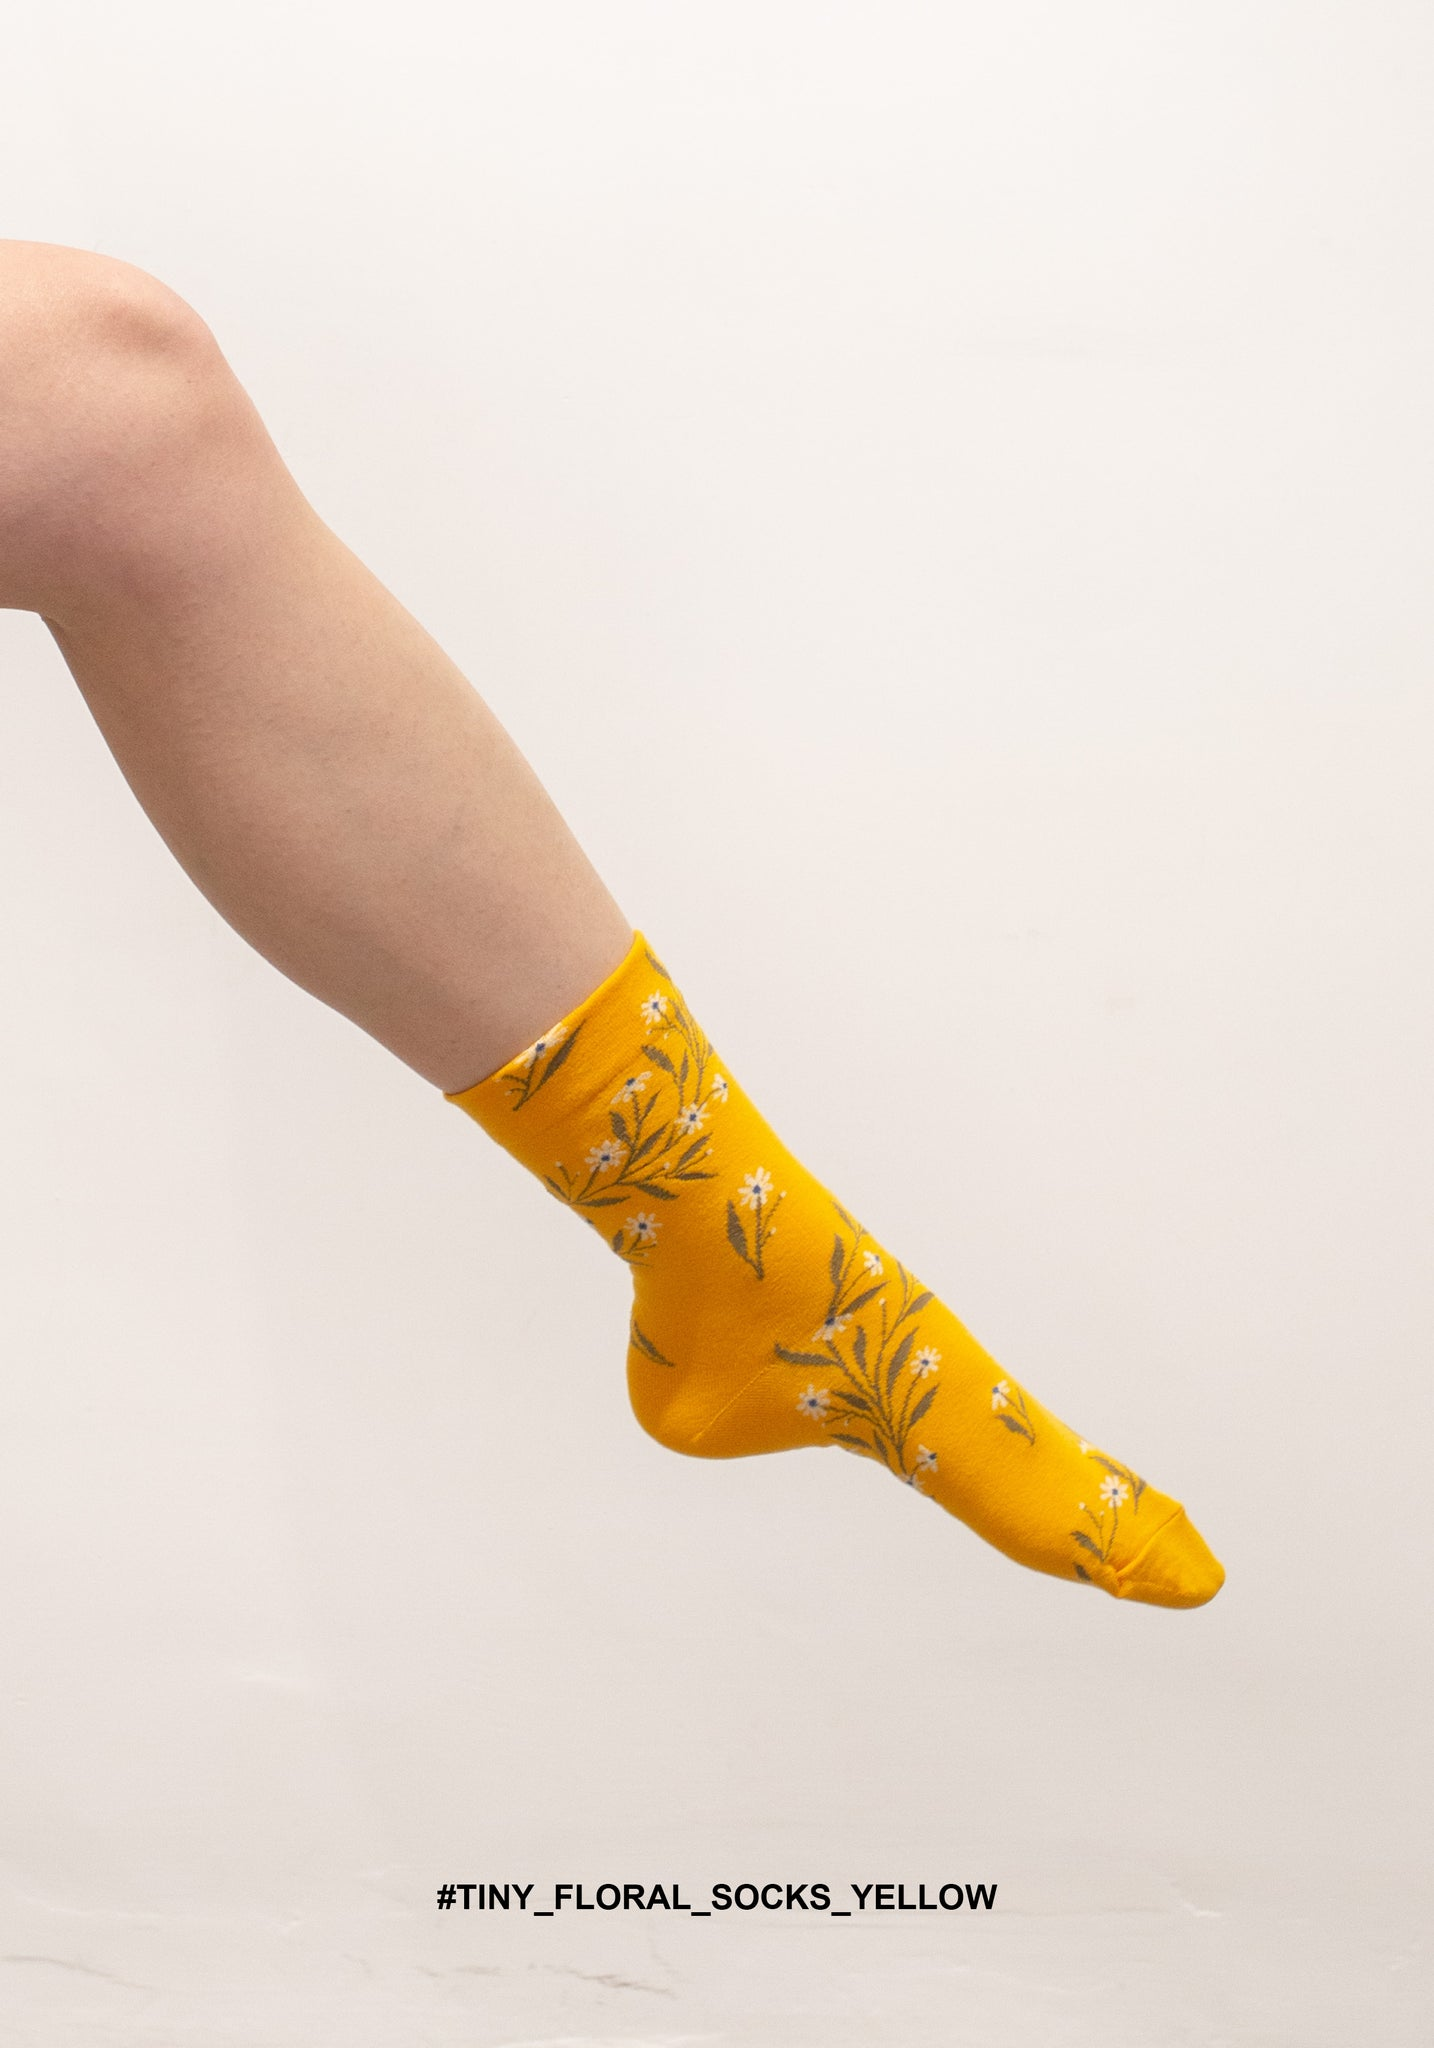 Tiny Floral Socks Yellow - whoami